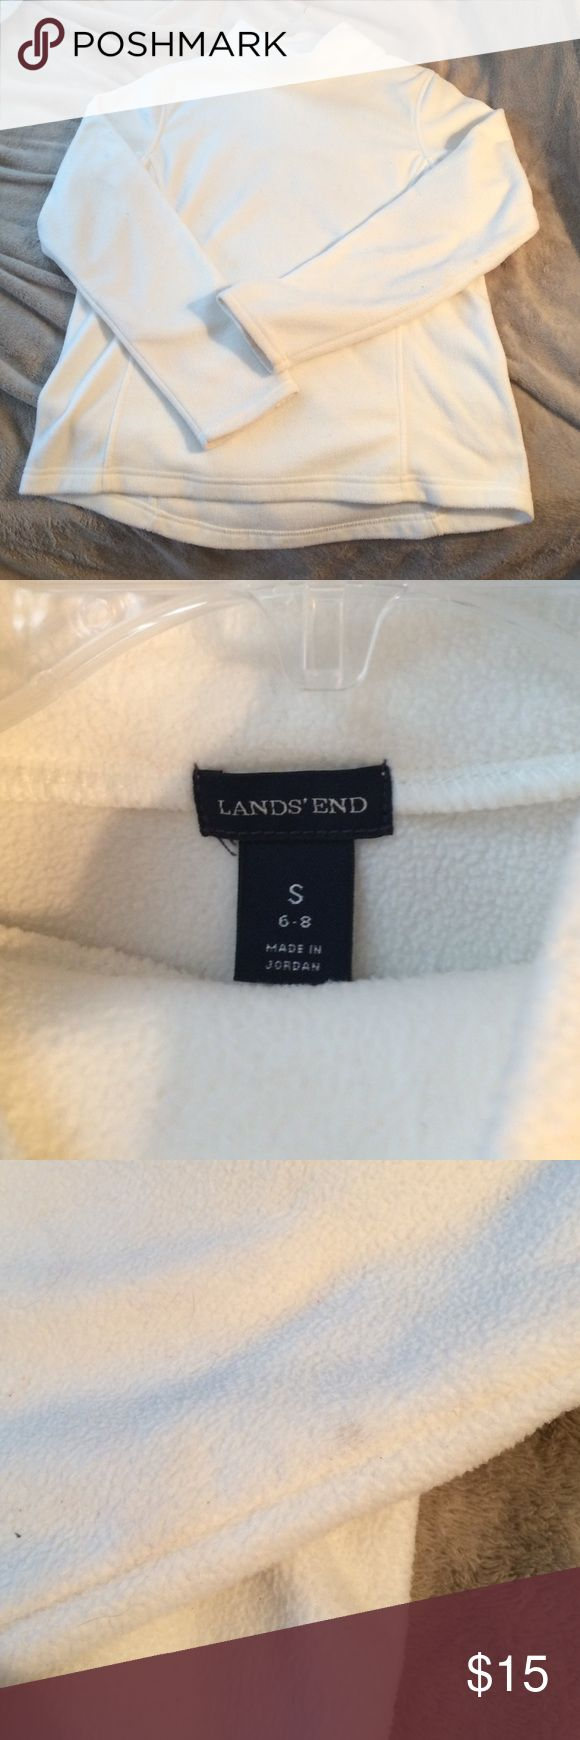 White Lands End mock neck sweater Size small, soft and comfy long sleeve sweater from Lands End that I got for Christmas! After wearing it once I realized it's a bit too big for me, mainly because I'm only 5'1. It has a couple spots that are barely noticeable but I tried my best to picture, probably from being stored until Christmas I'm assuming. Will probably easily come out. Really unnoticeable and the overall condition is almost perfect. Lands' End Tops Sweatshirts & Hoodies